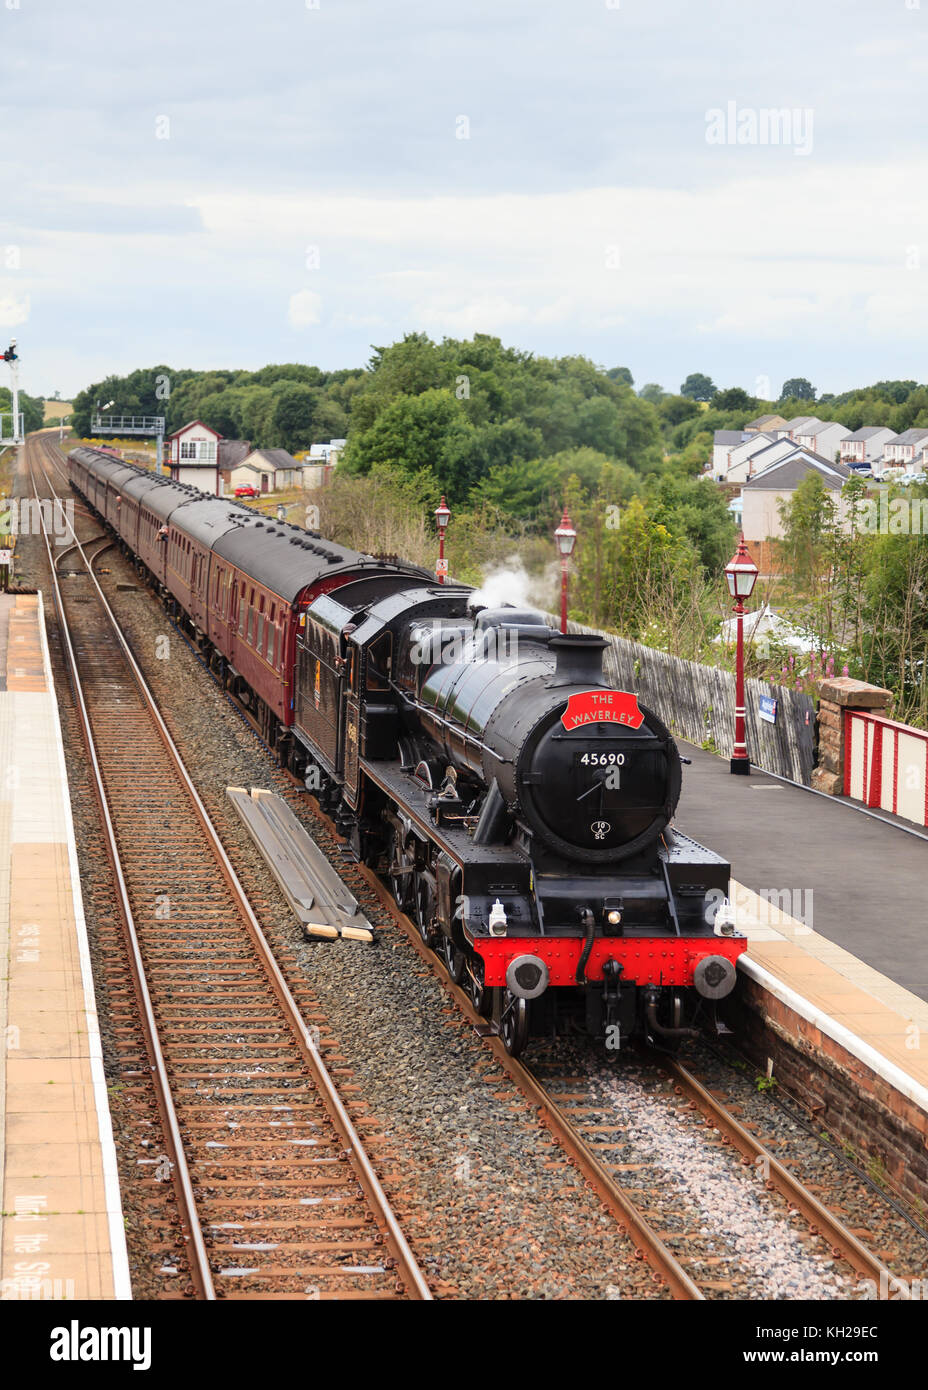 Preserved steam locomotive 45690, Leander heads the Waverley into Appleby station, on the Settle to Carlisle railway. - Stock Image